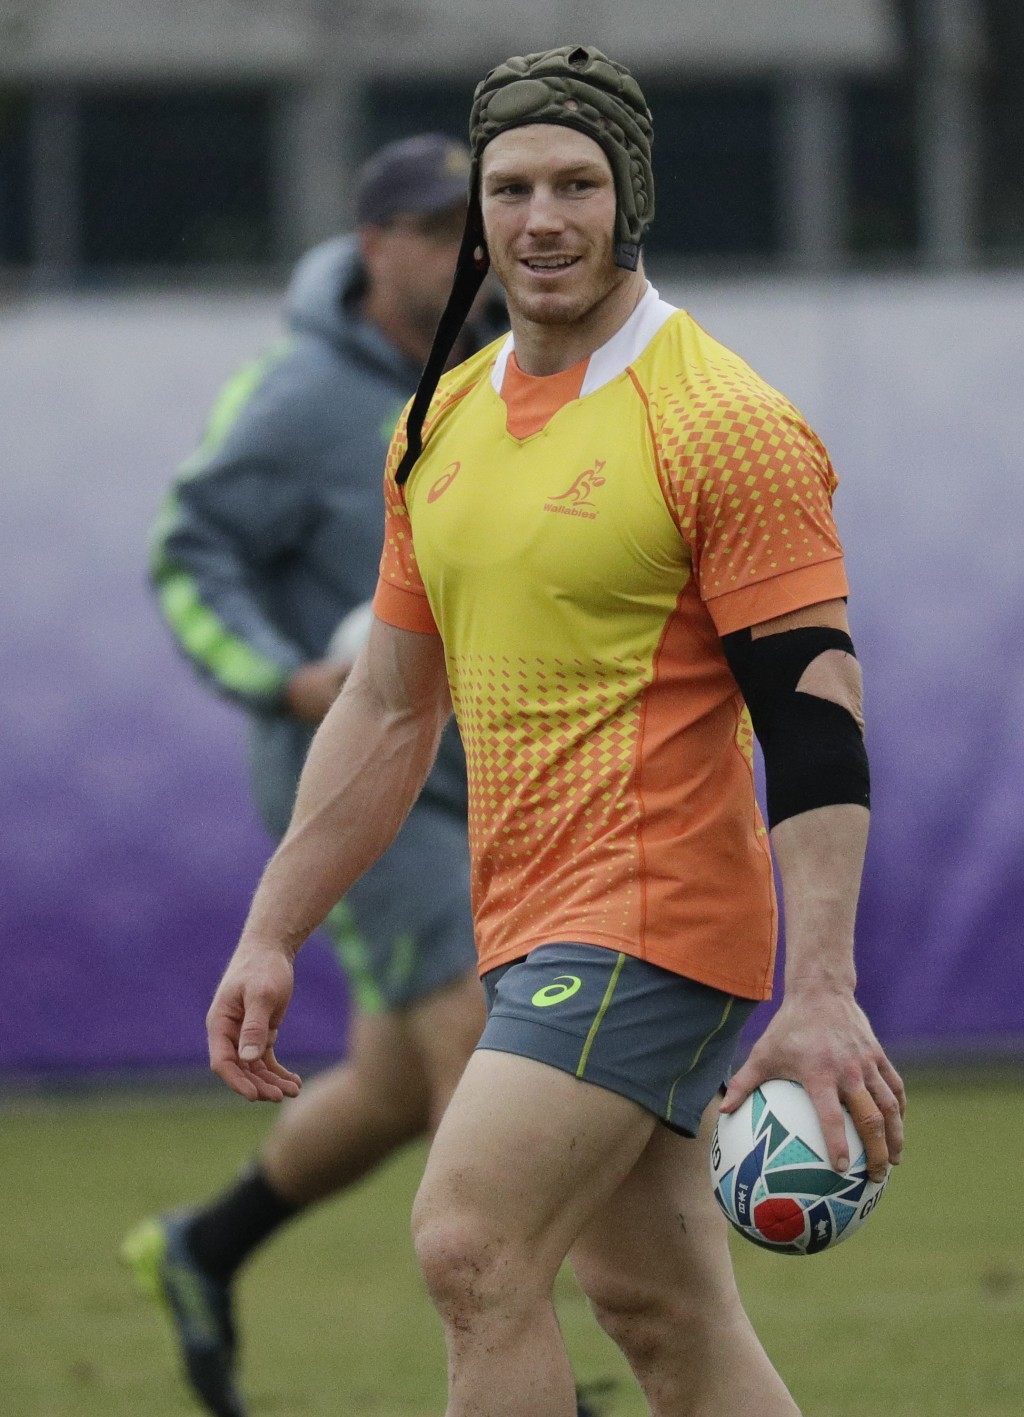 Australian rugby player David Pocock trains at Oita, Japan, Thursday Oct. 17, 2019. Australia will face England in the quarterfinals at the Rugby Worl...